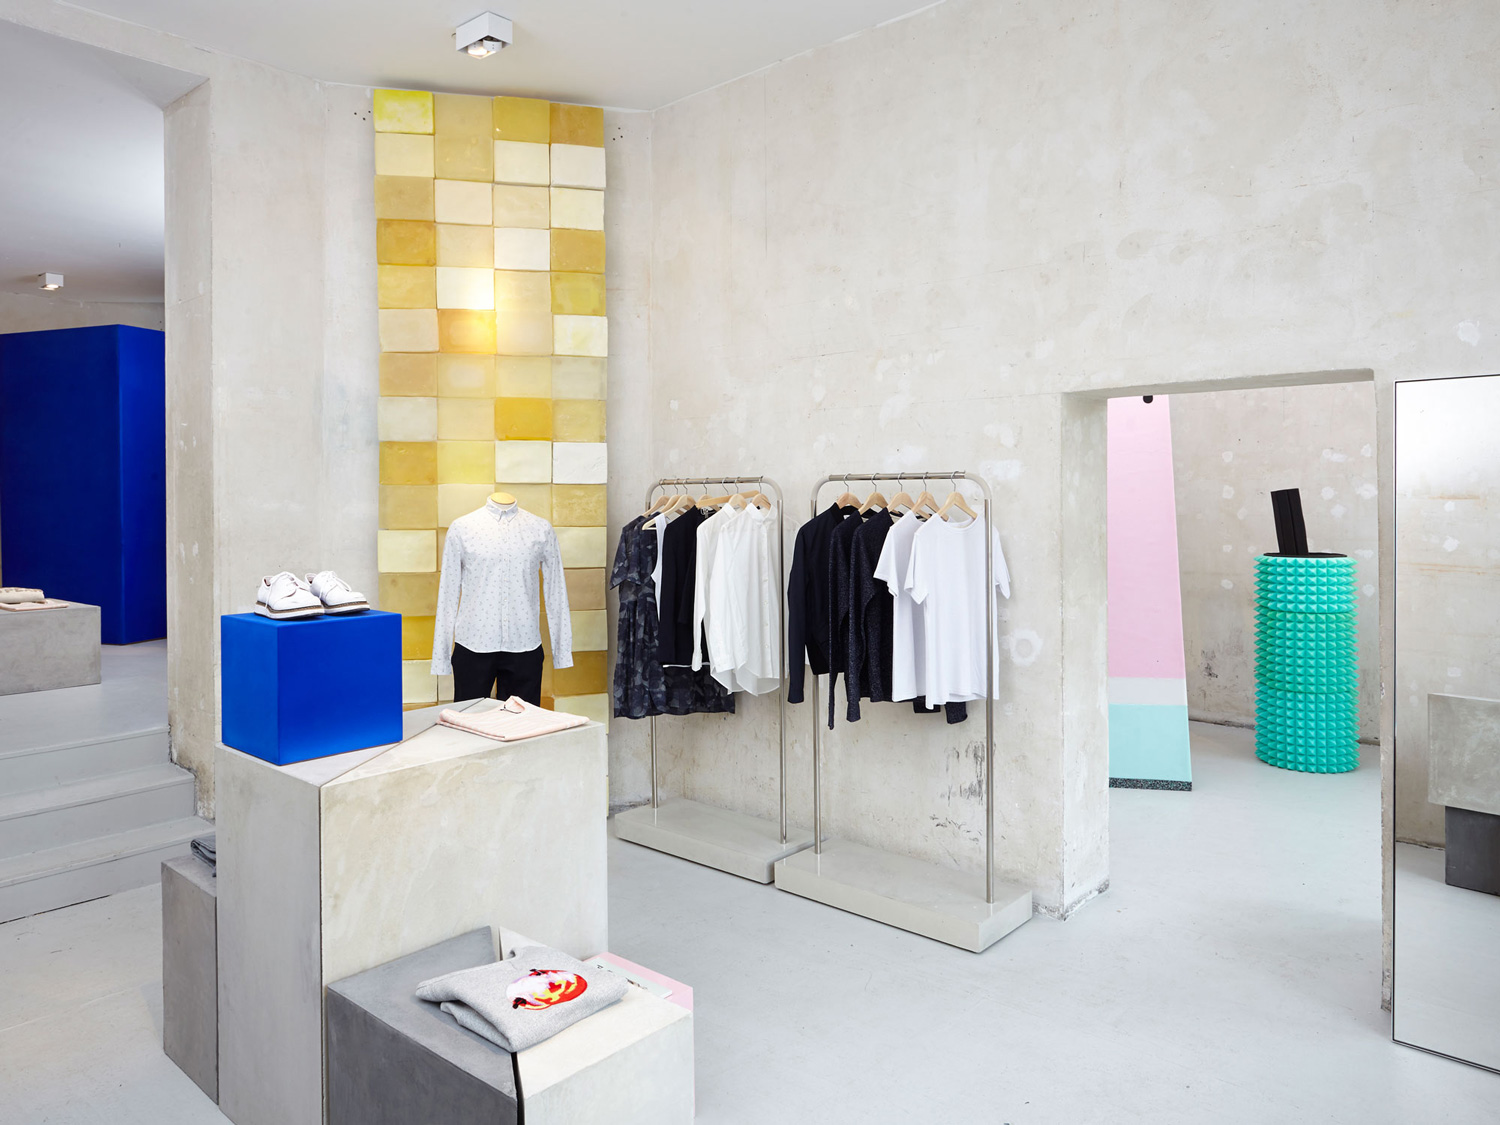 Seek No Further Fruit of the Loom Pop up by Universal Design Studio | Yellowtrace